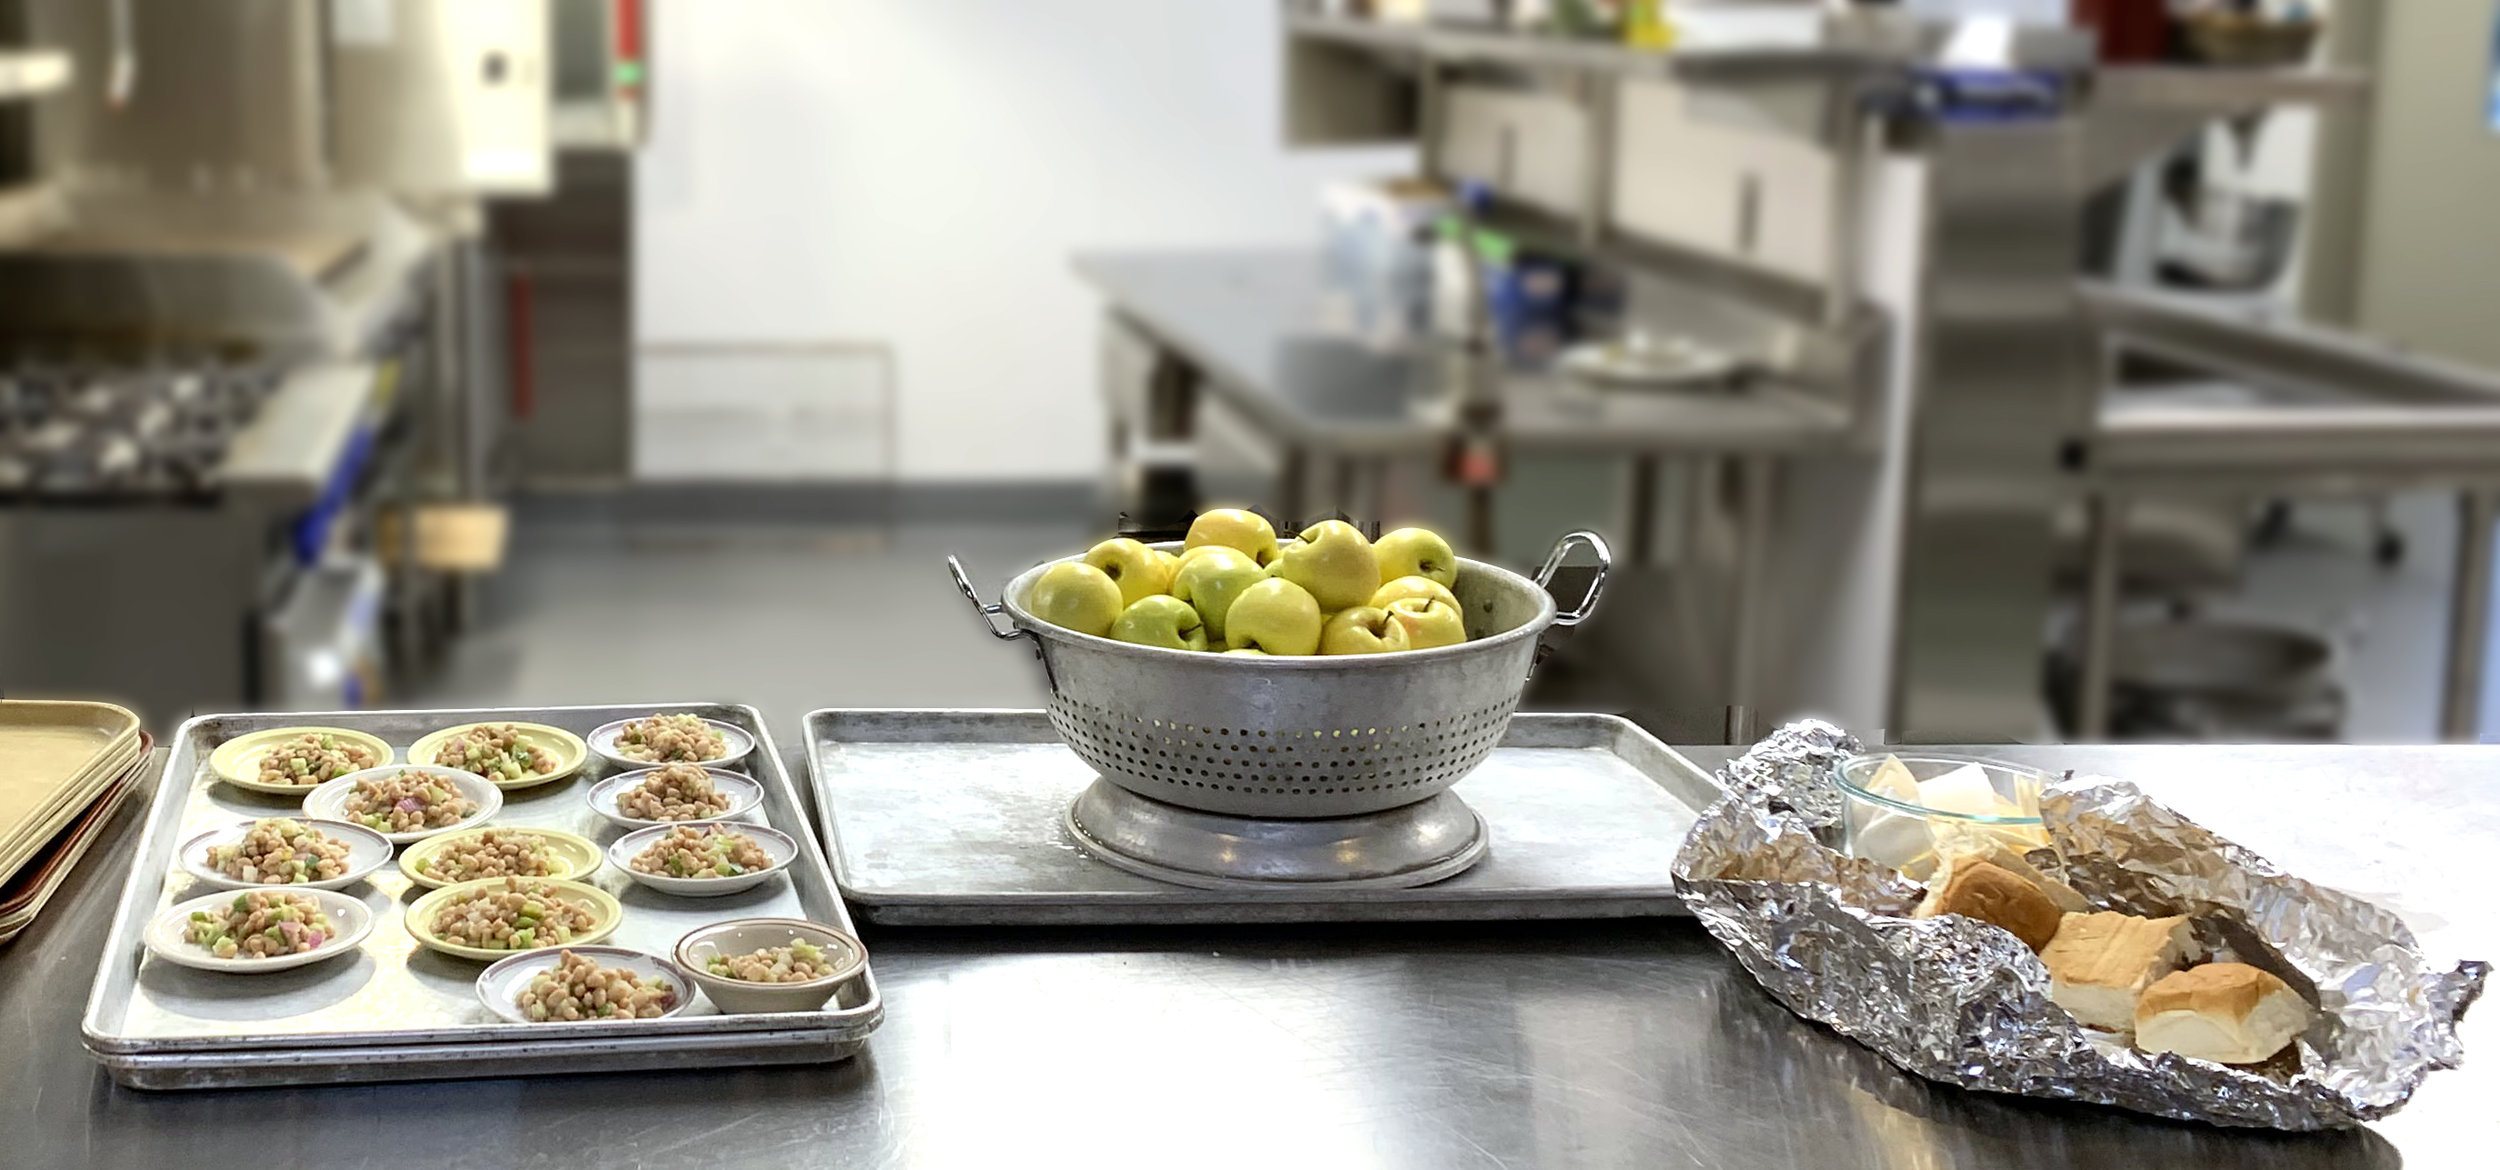 picture of food in the kitchen